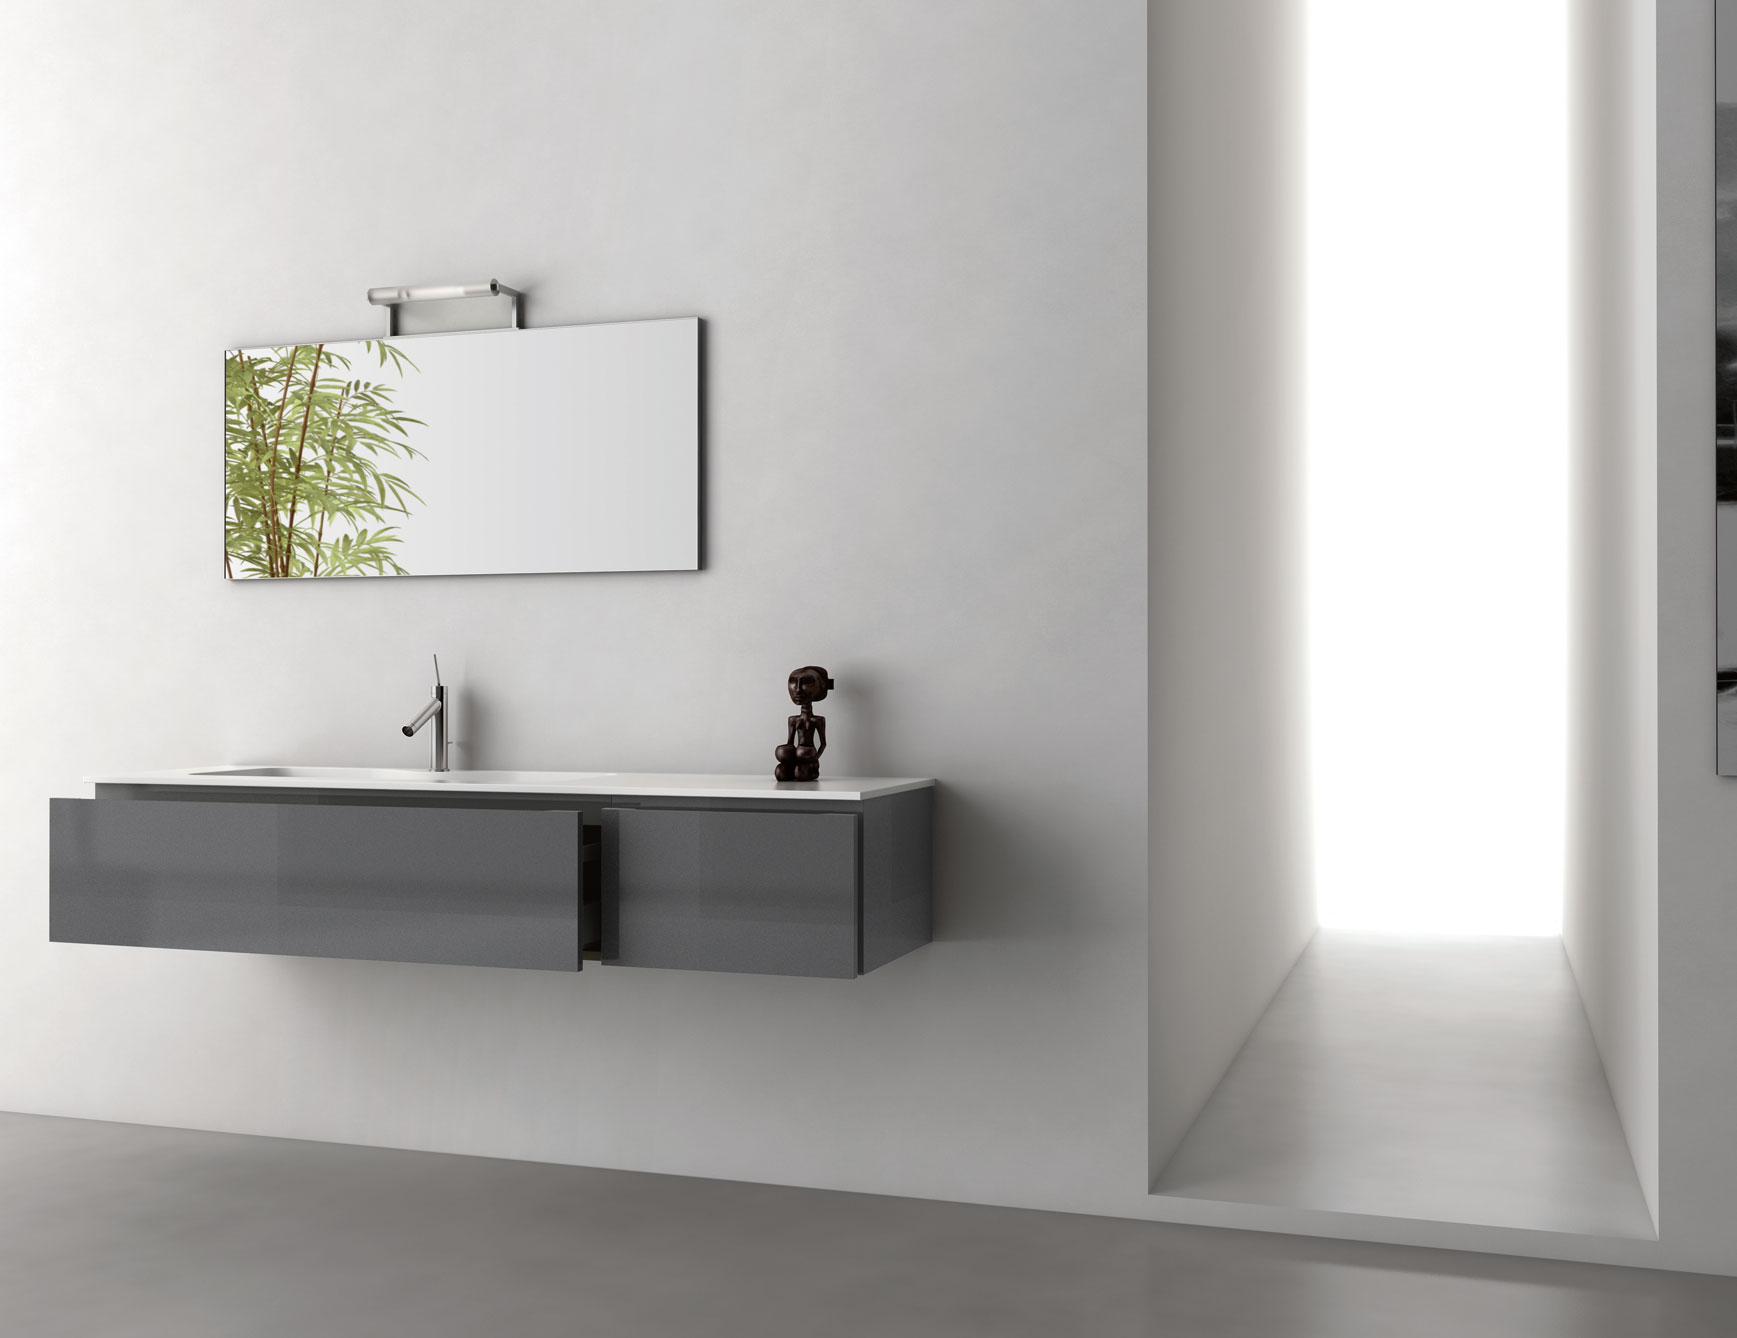 Infinity In14 Modular Italian Bathroom Vanity In Grey Metal Lacquer pertaining to measurements 1737 X 1338